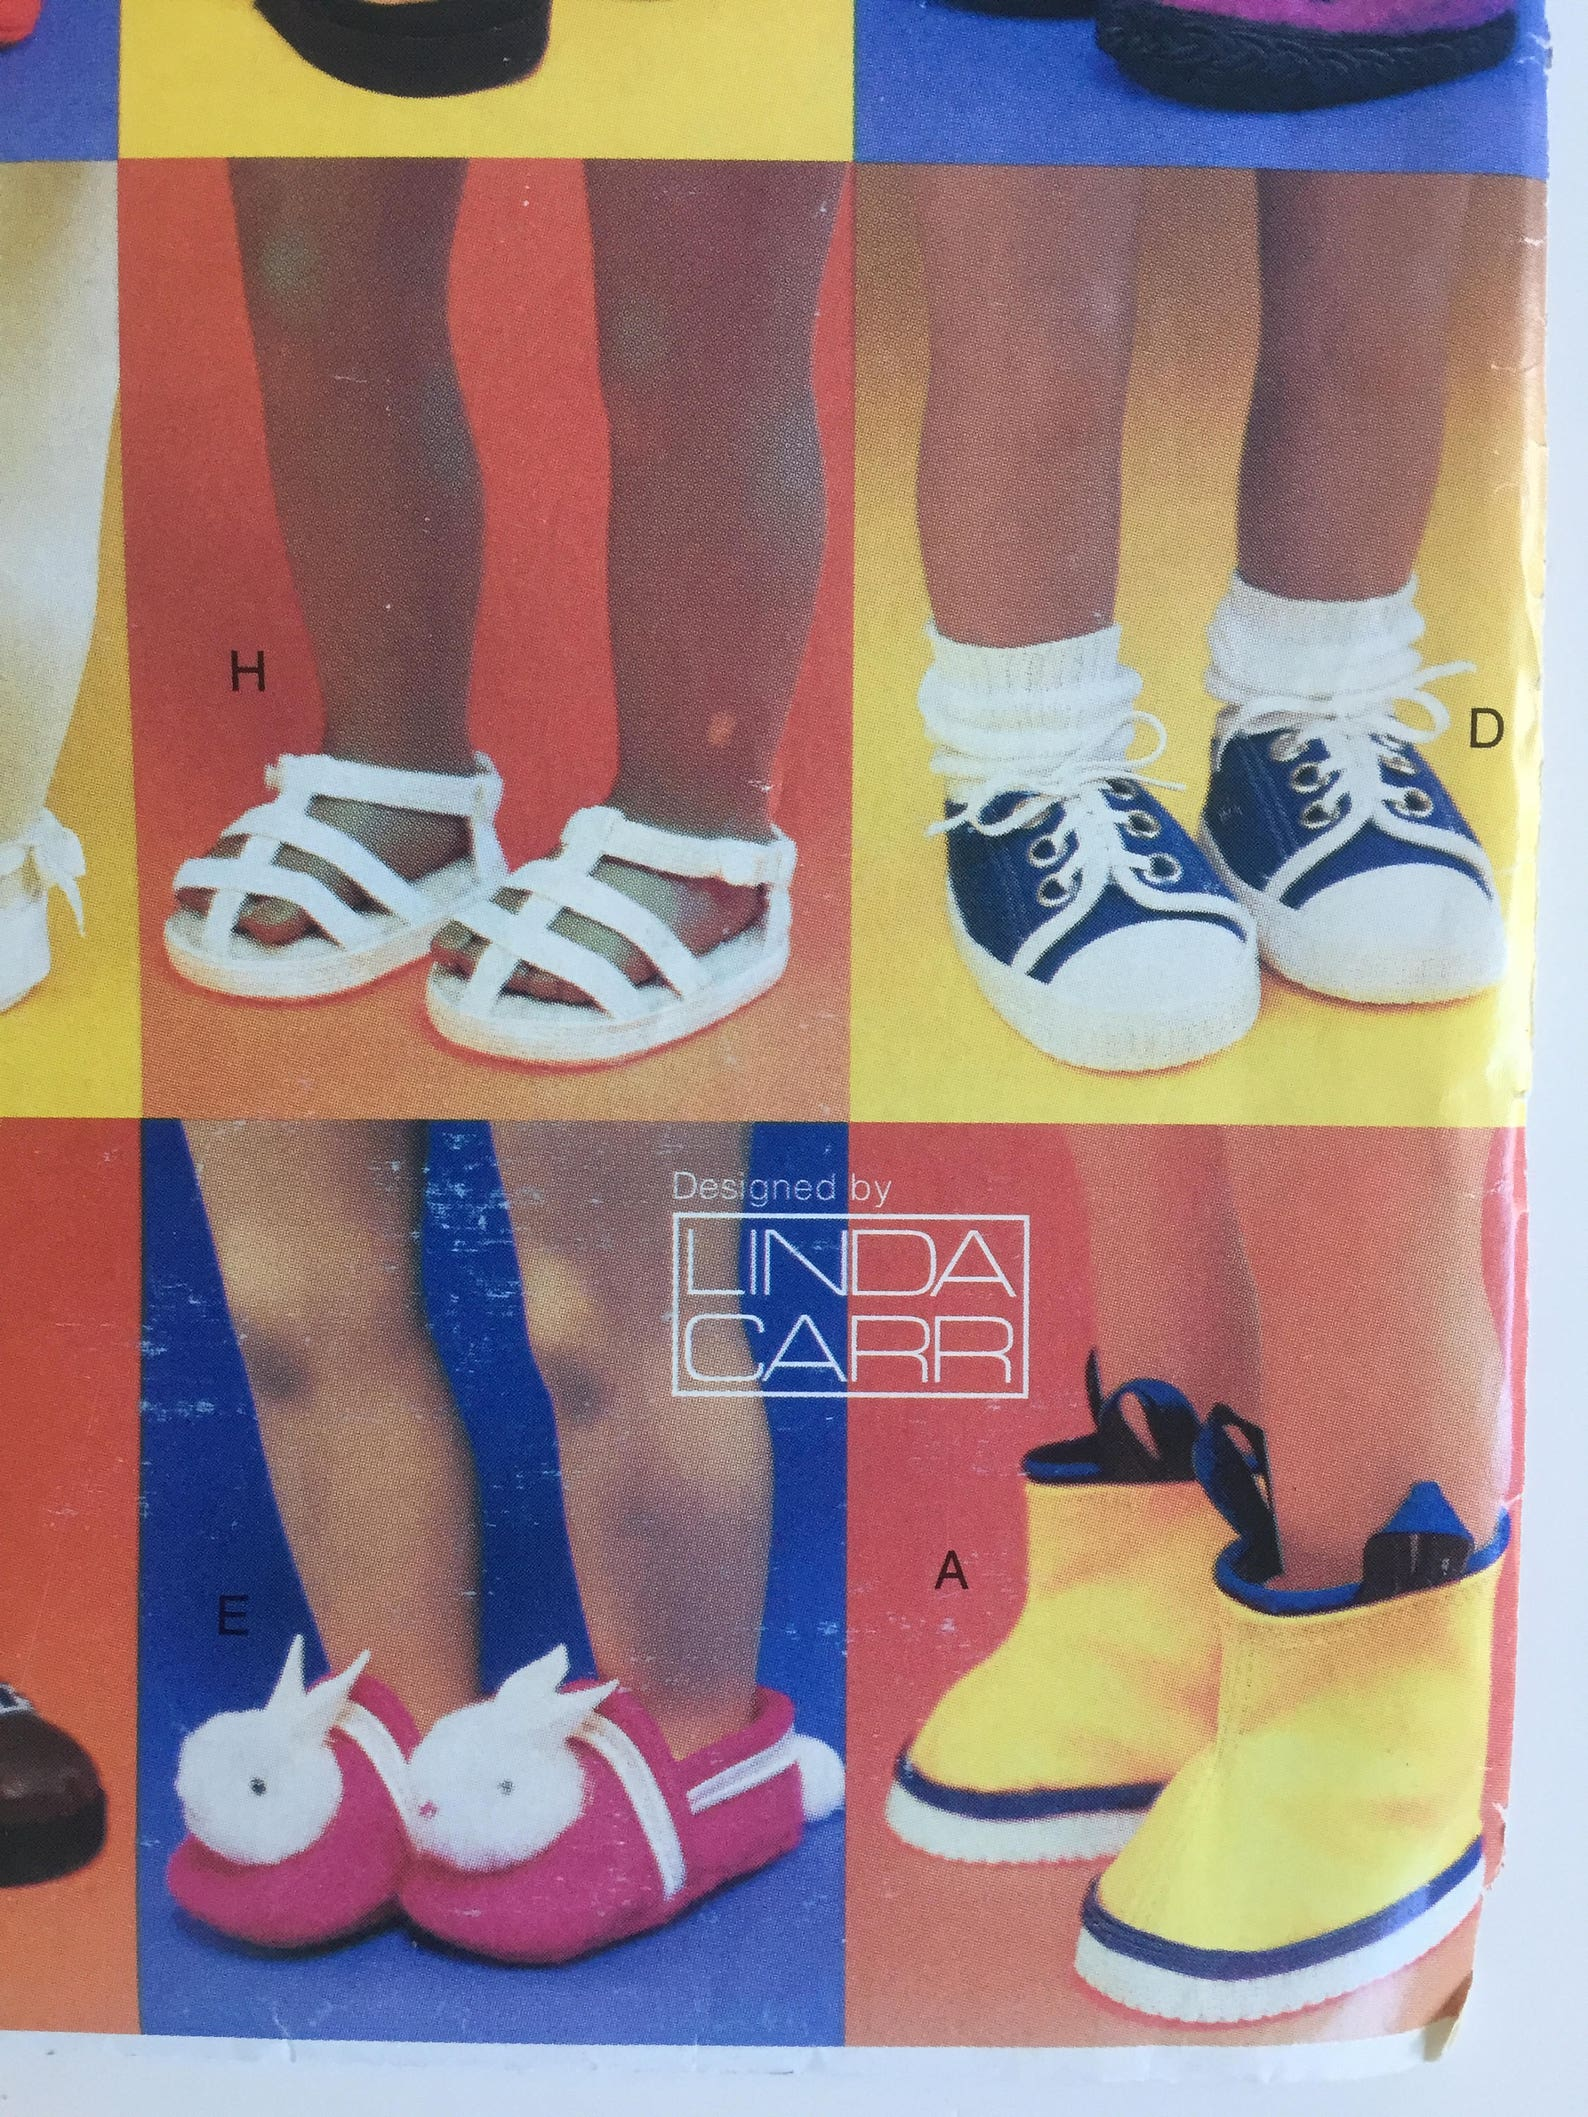 vogue craft 7329/728 sewing pattern 18 inch doll footwear linda carr designs sandals, slippers, boots, ballet, clogs girl americ